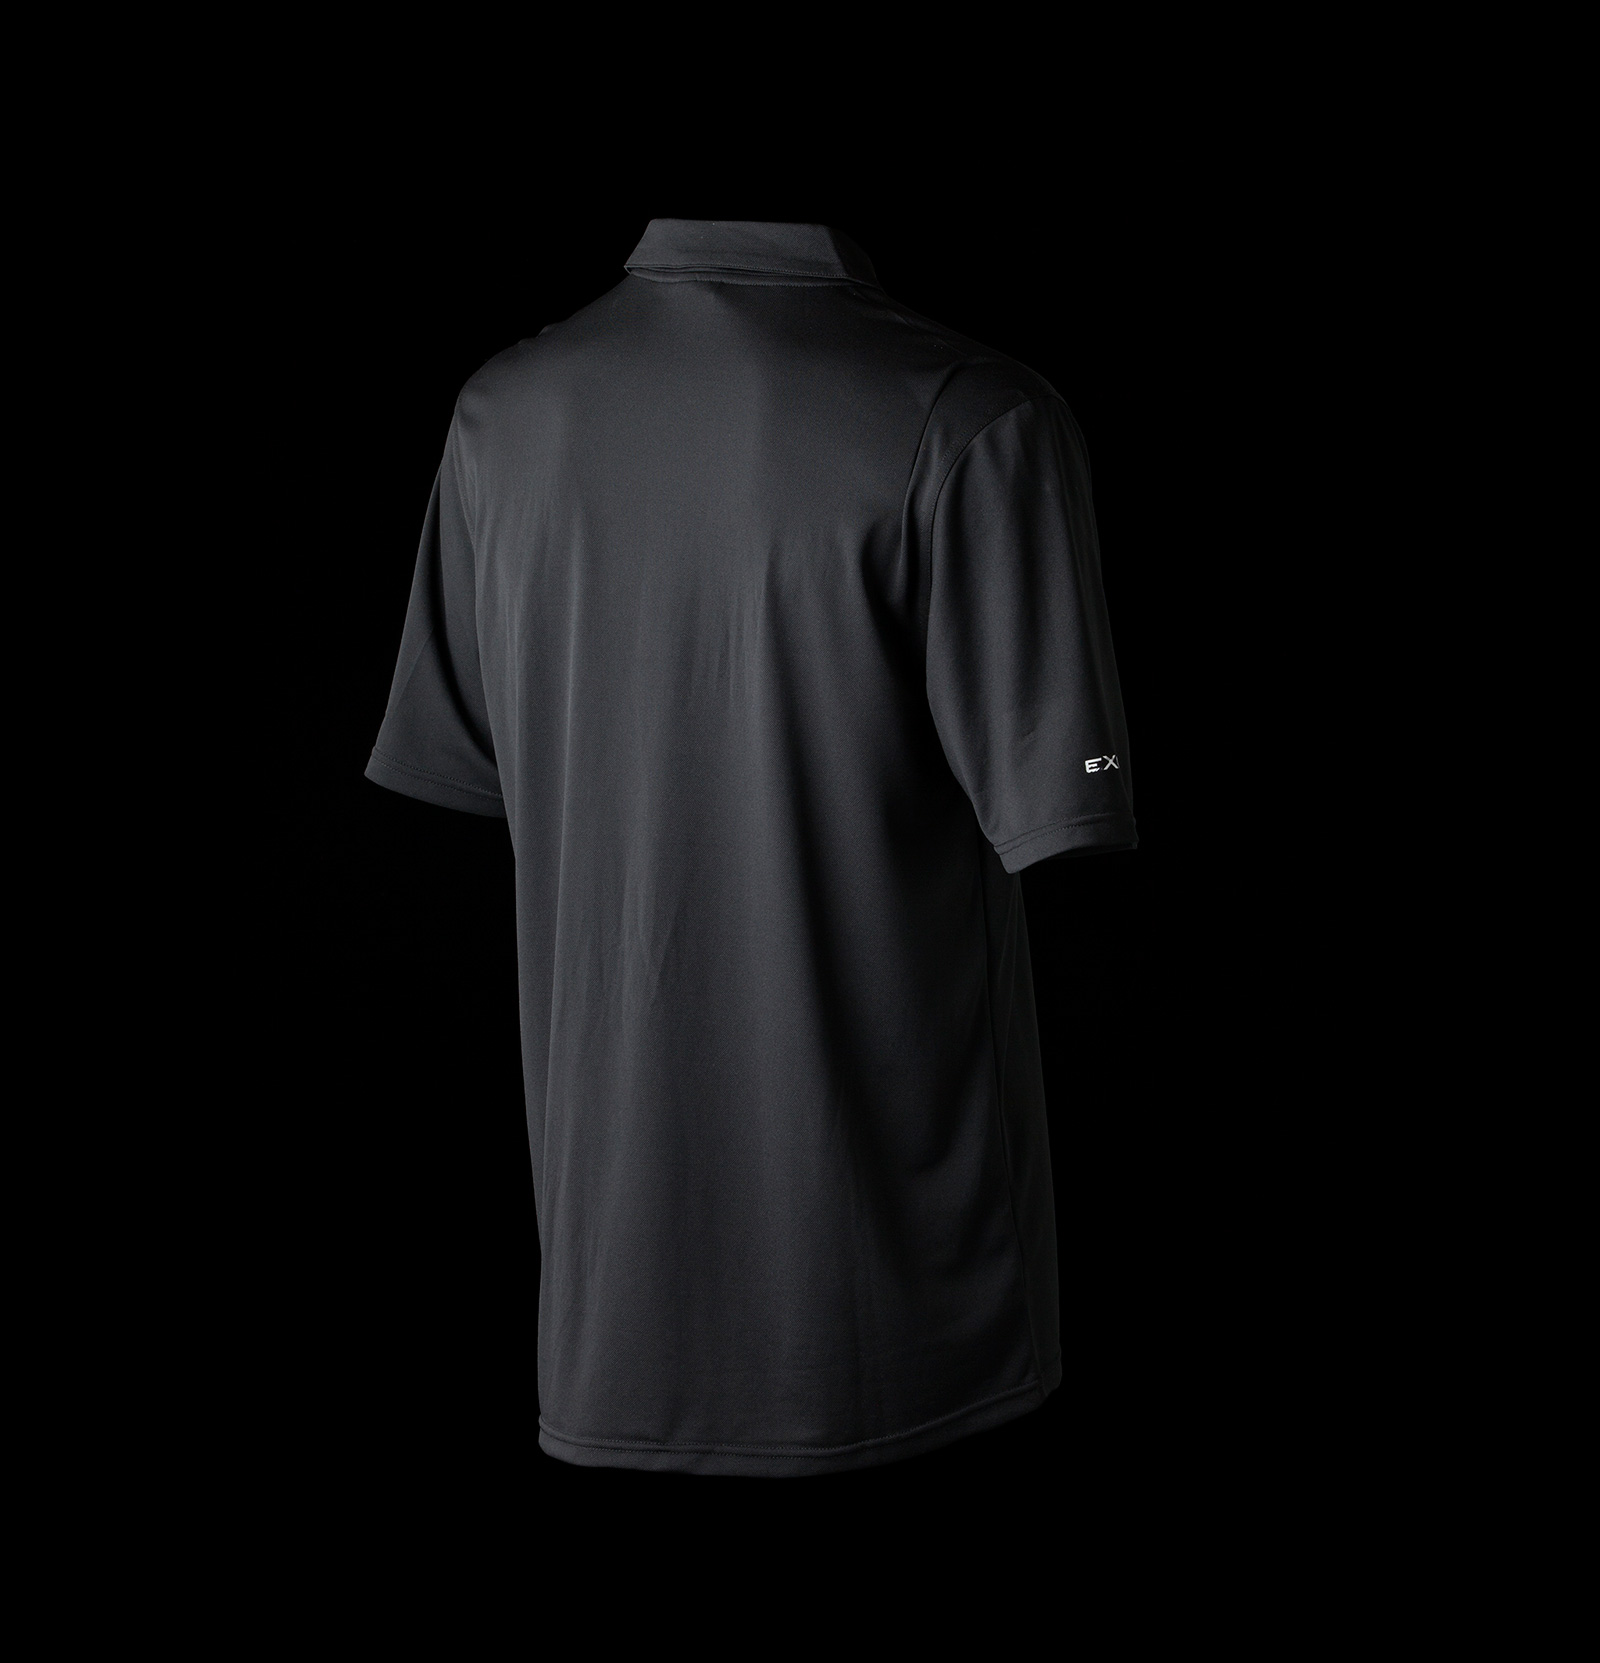 Excel-Polo-Shirt-Promo-45